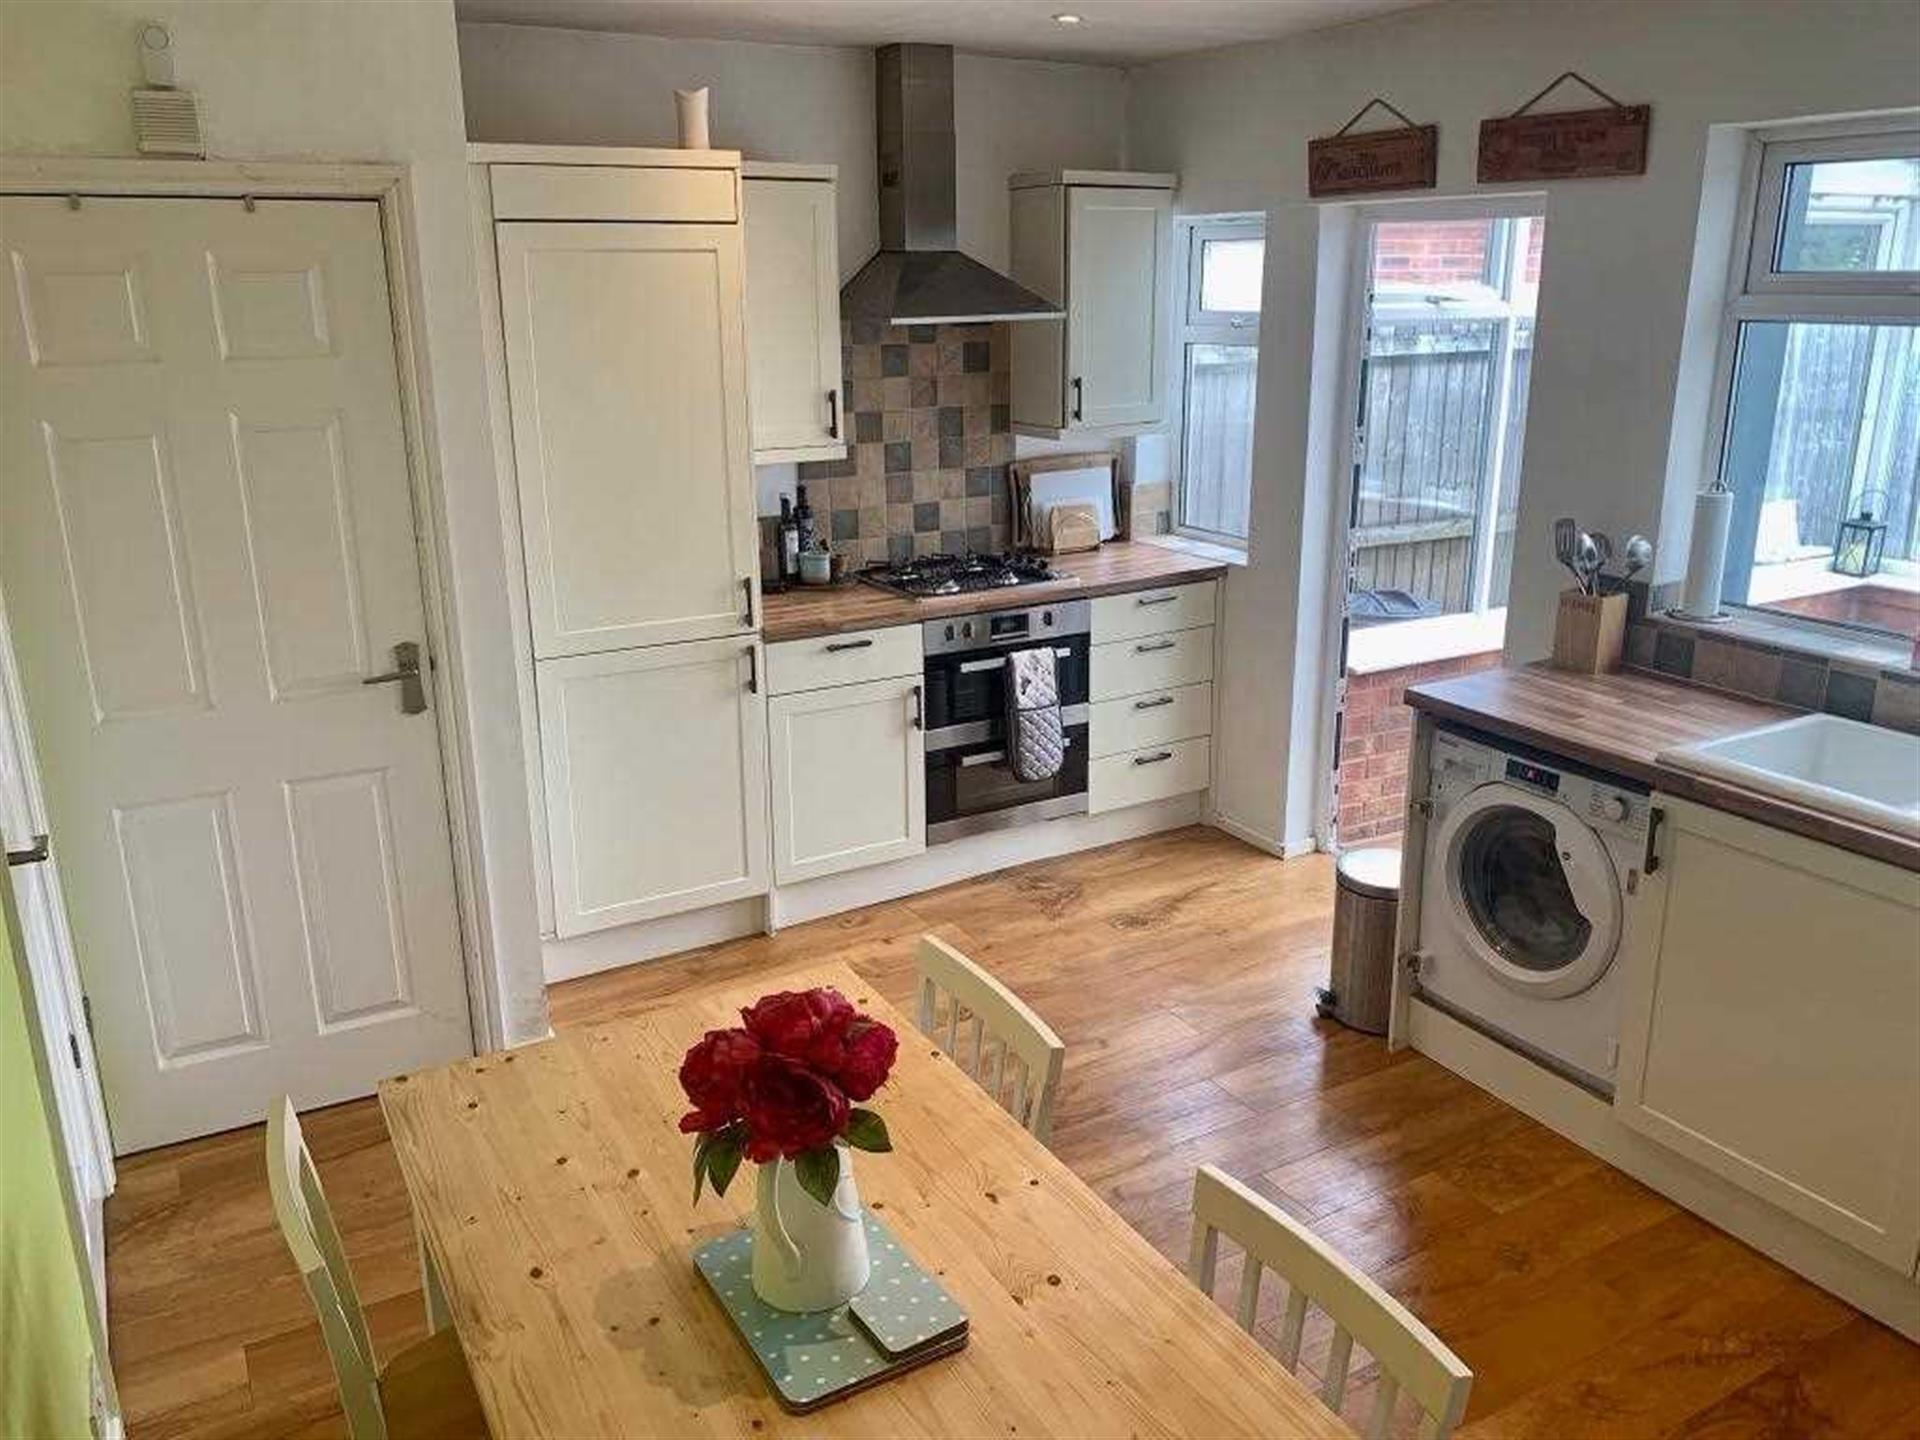 2 Bedroom Semi-detached House For Sale - Fitted Kitchen Diner